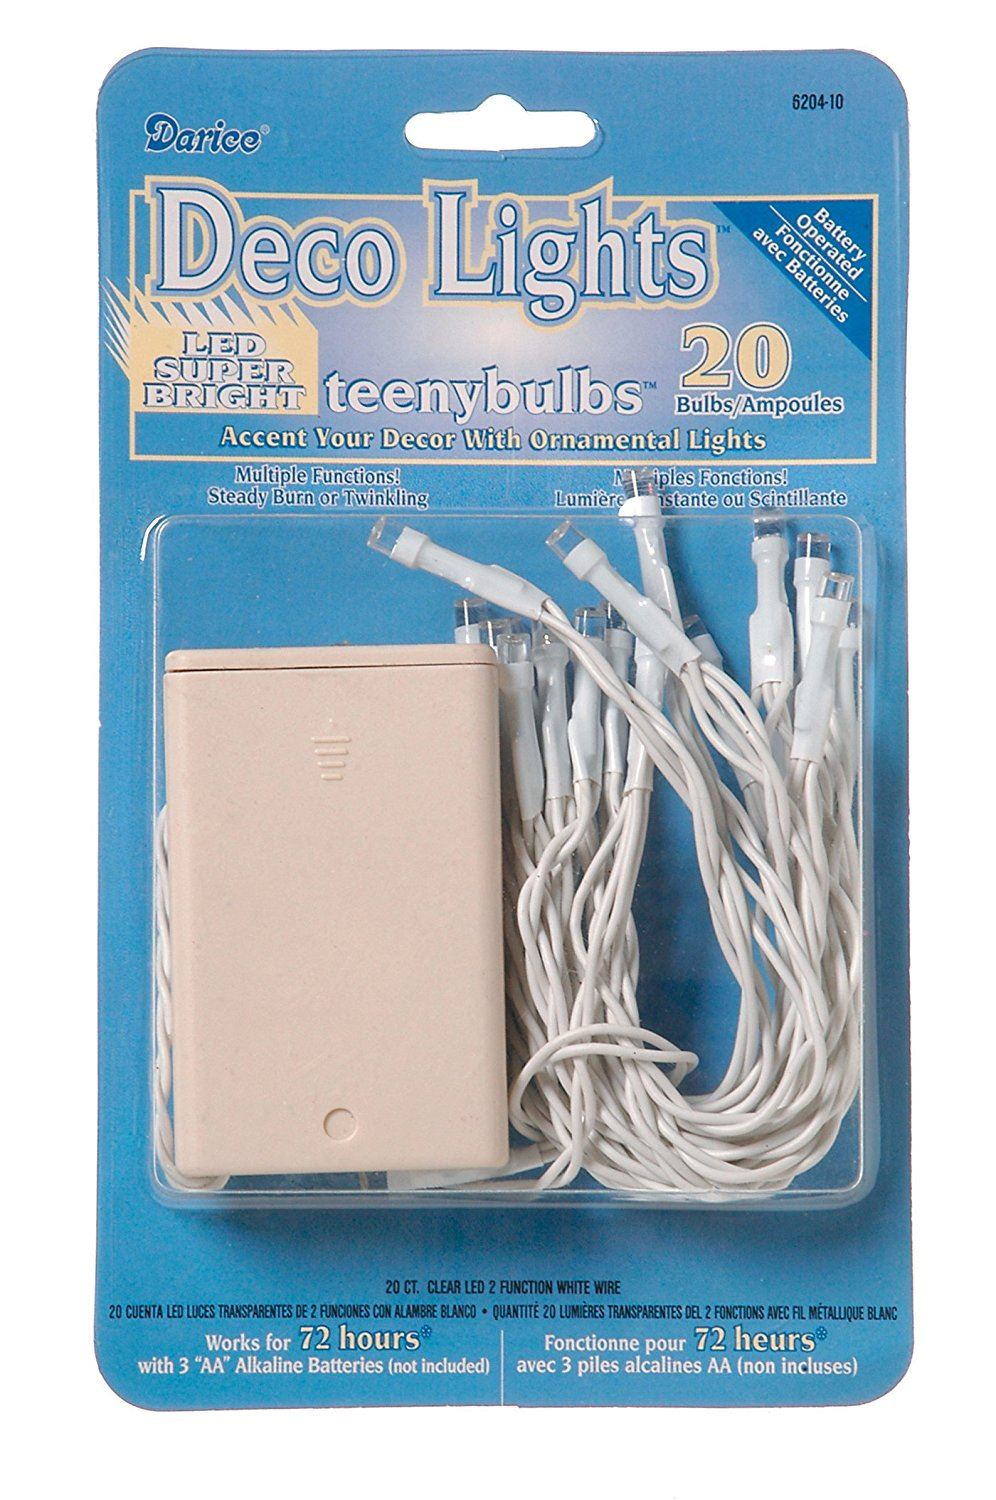 Darice Various Deco Battery Operated Teeny Bulbs-20 Bulbs-Clear Lights, White Cord